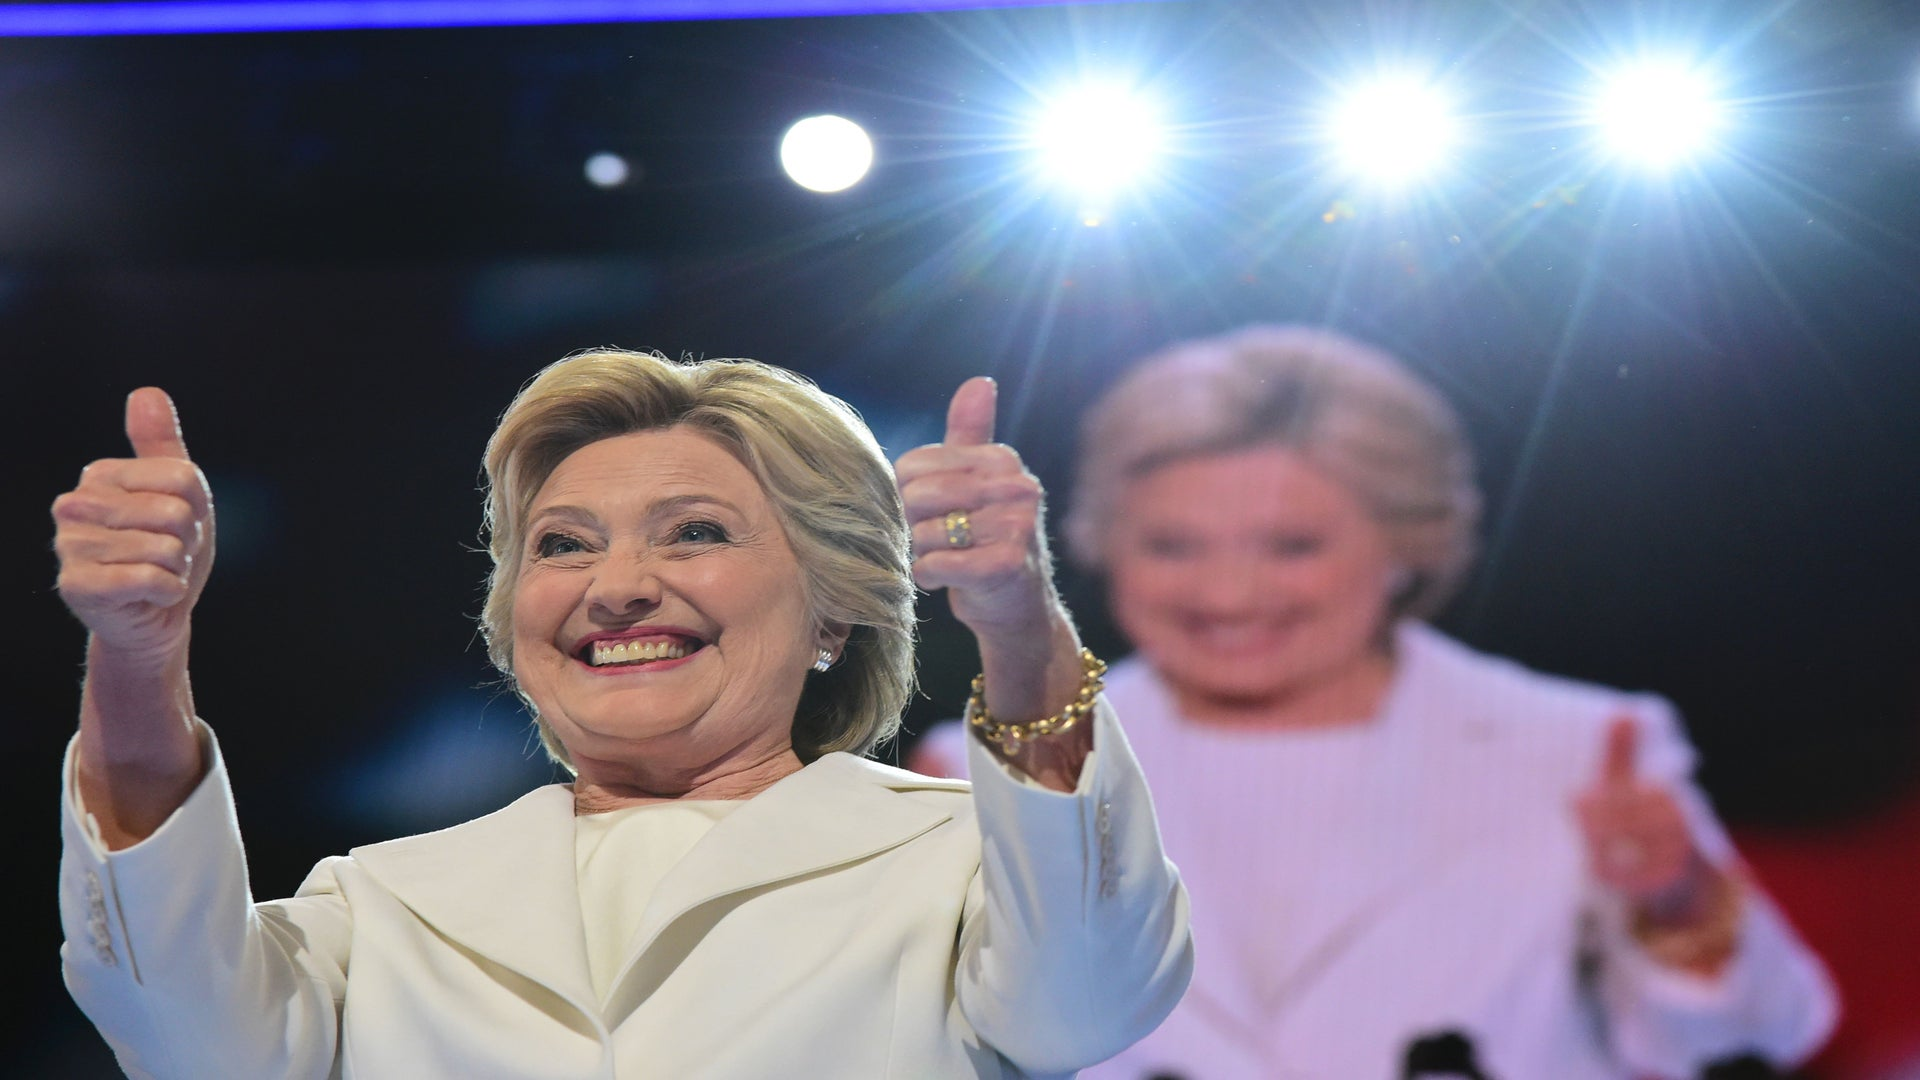 Guess Which Staunch Republican Is Voting For Hillary Clinton?